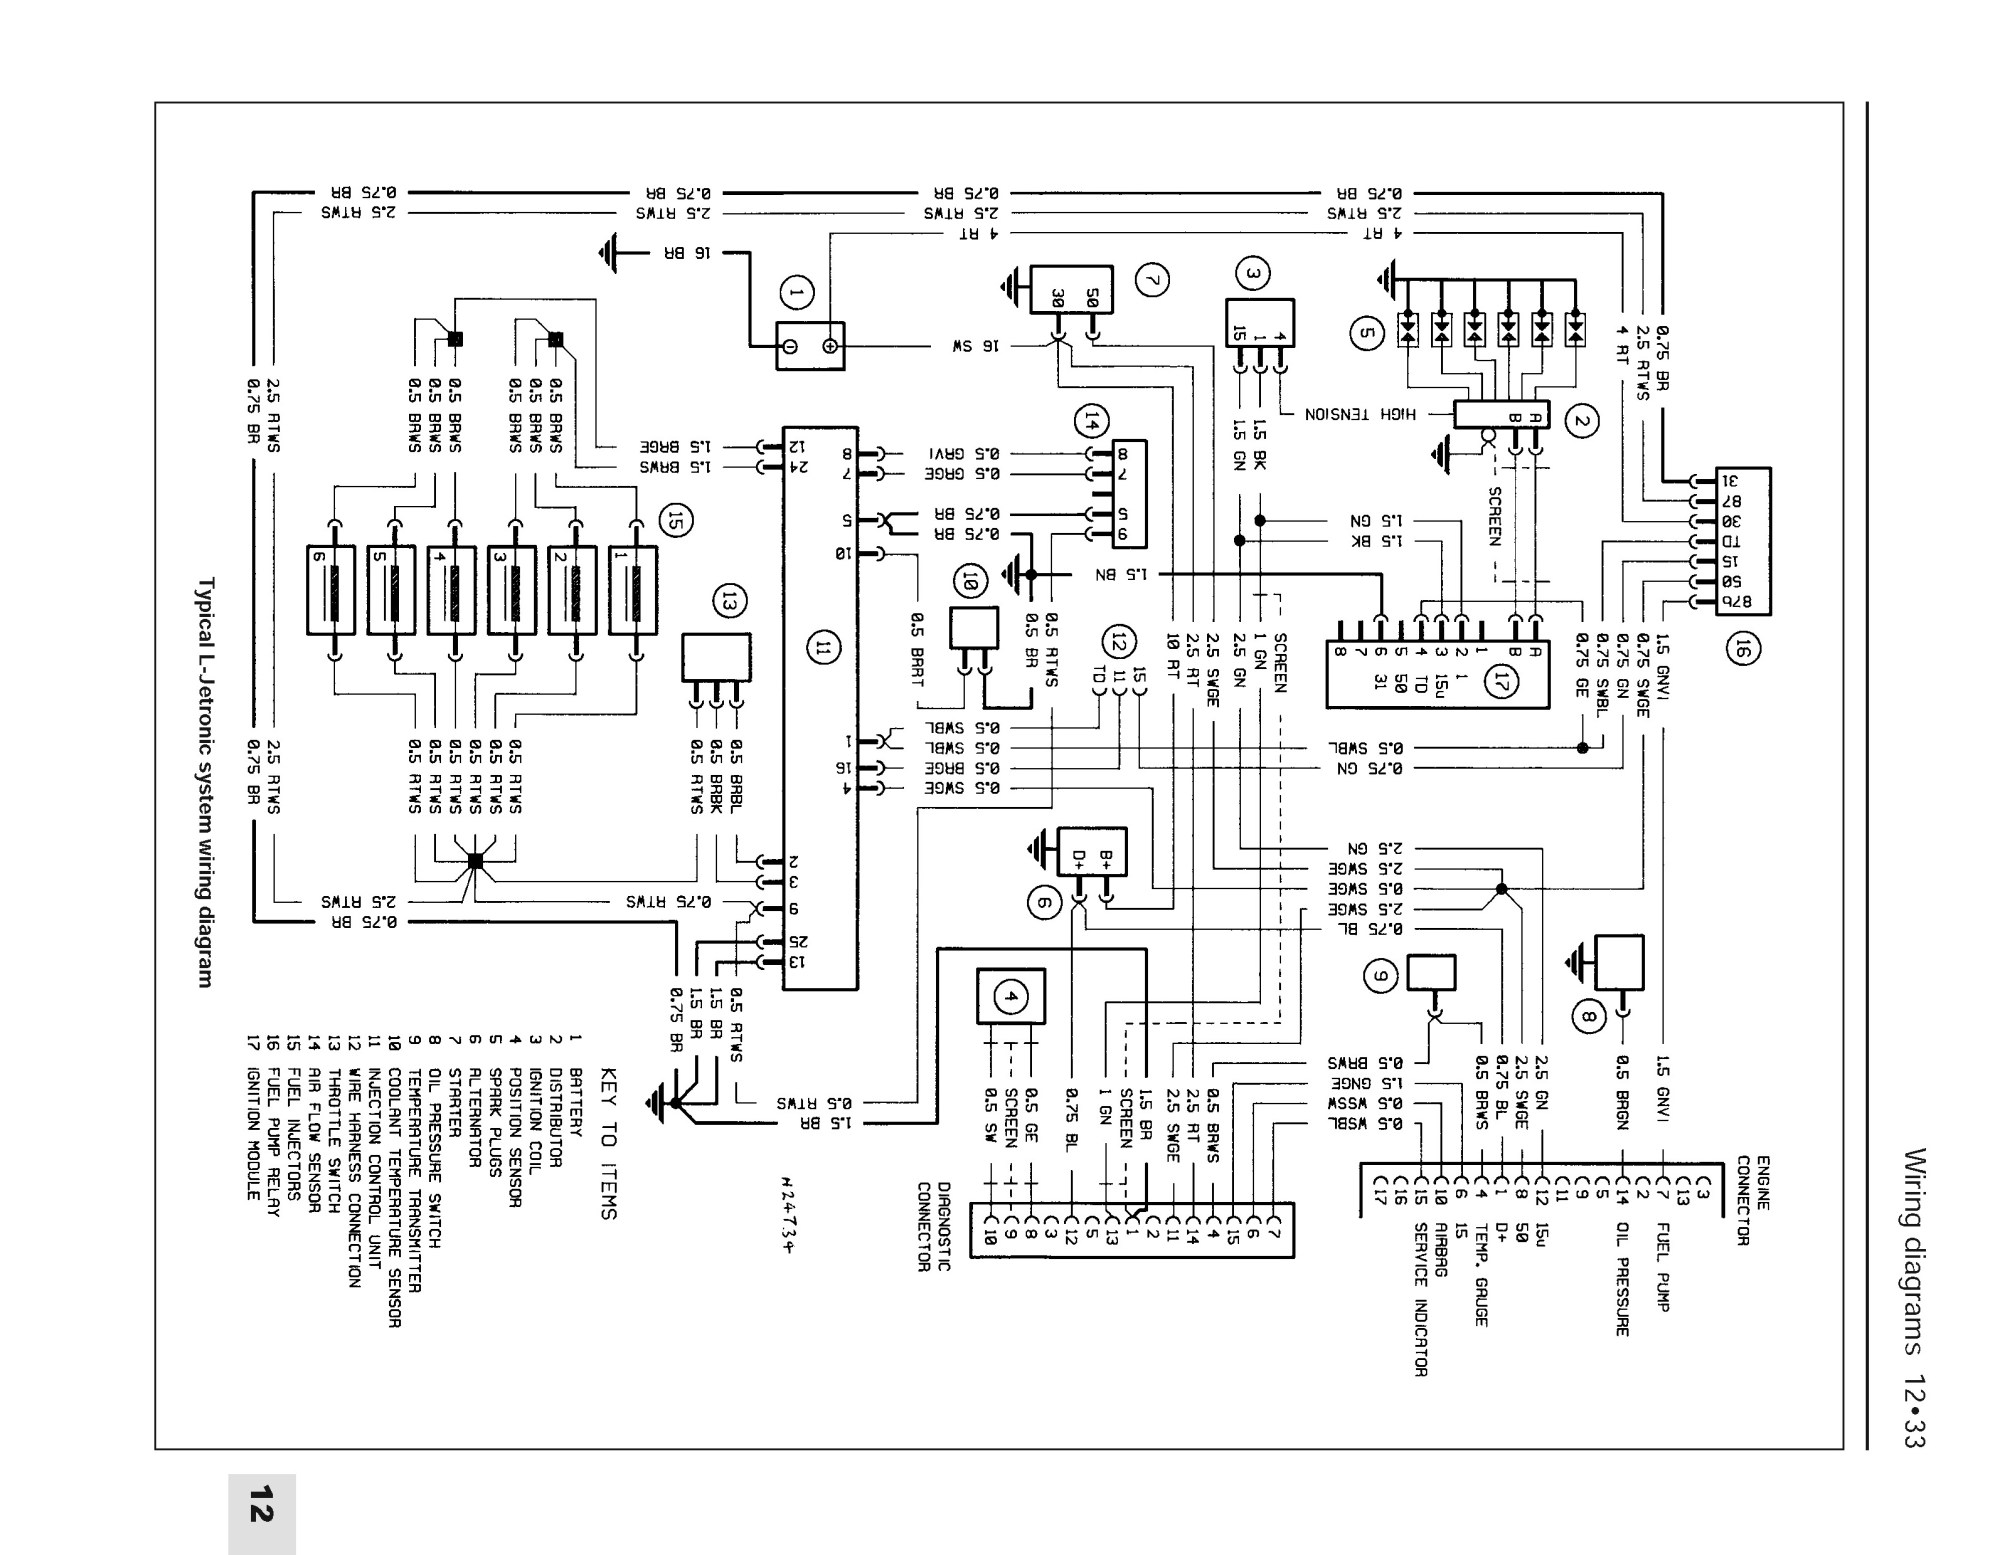 hight resolution of bmw 1 series wiring diagram wiring diagram for you bmw 323i fuse diagram bmw 120d wiring